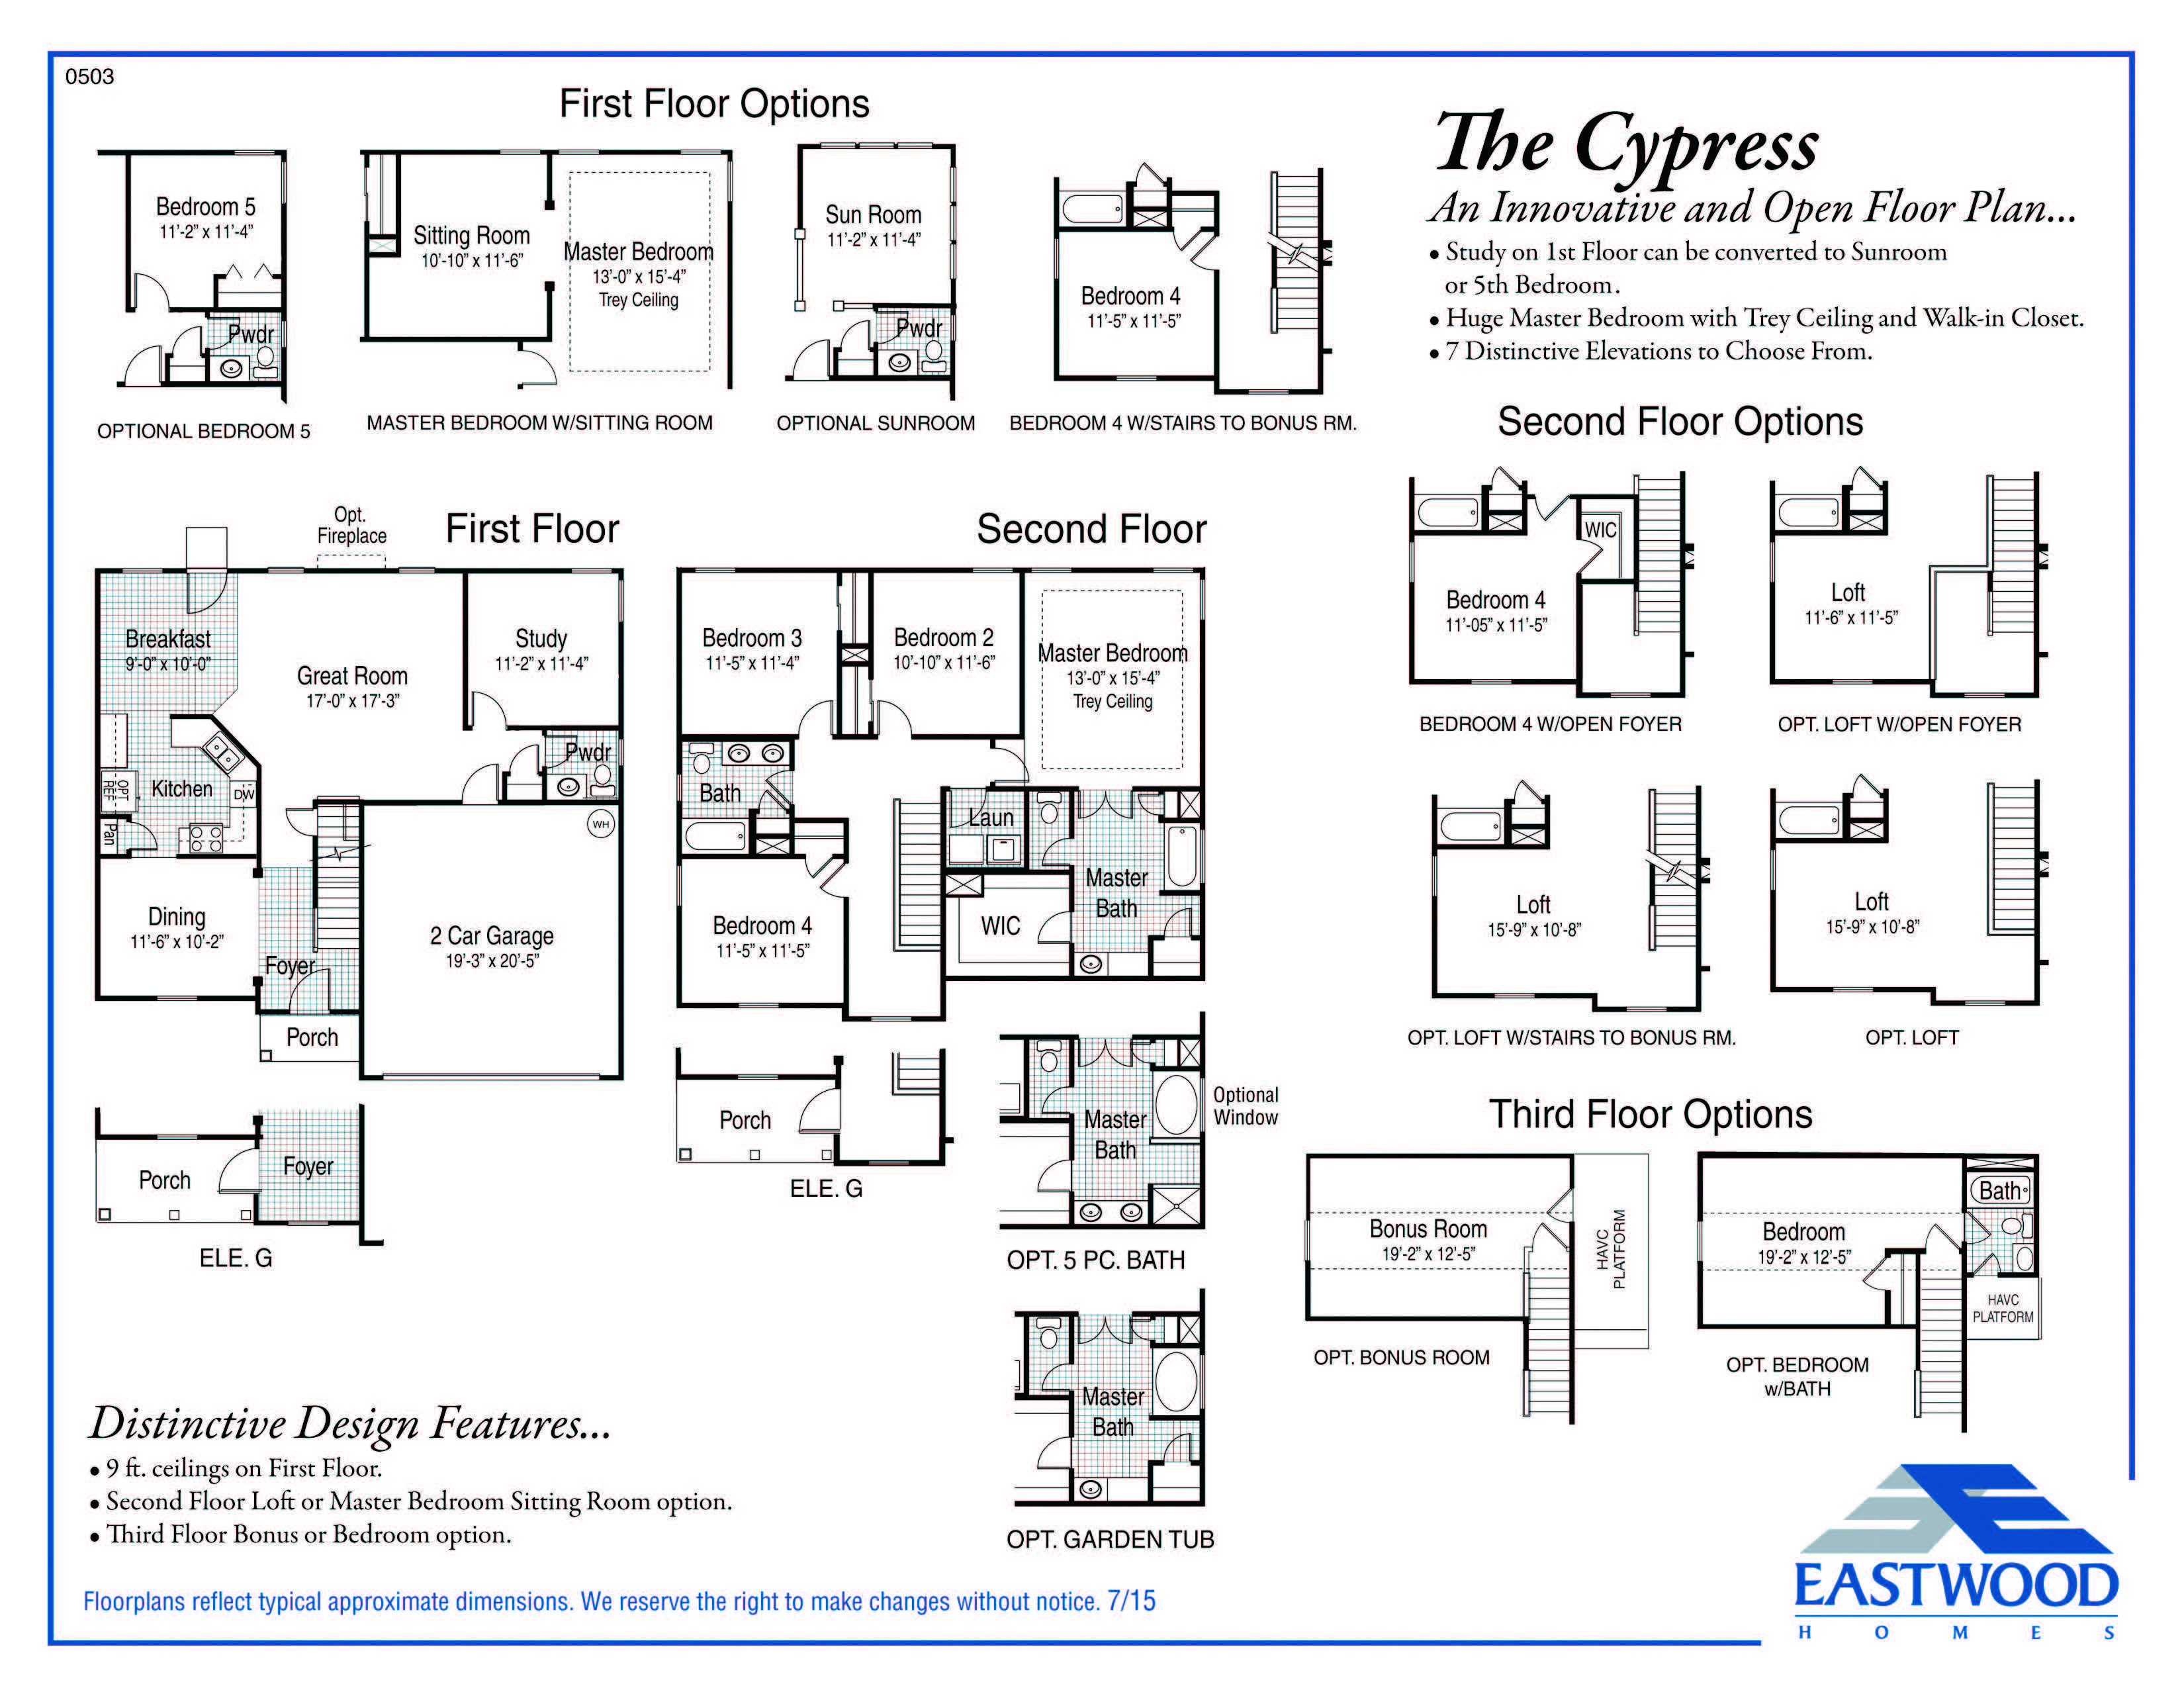 Cypress  First Floor Image